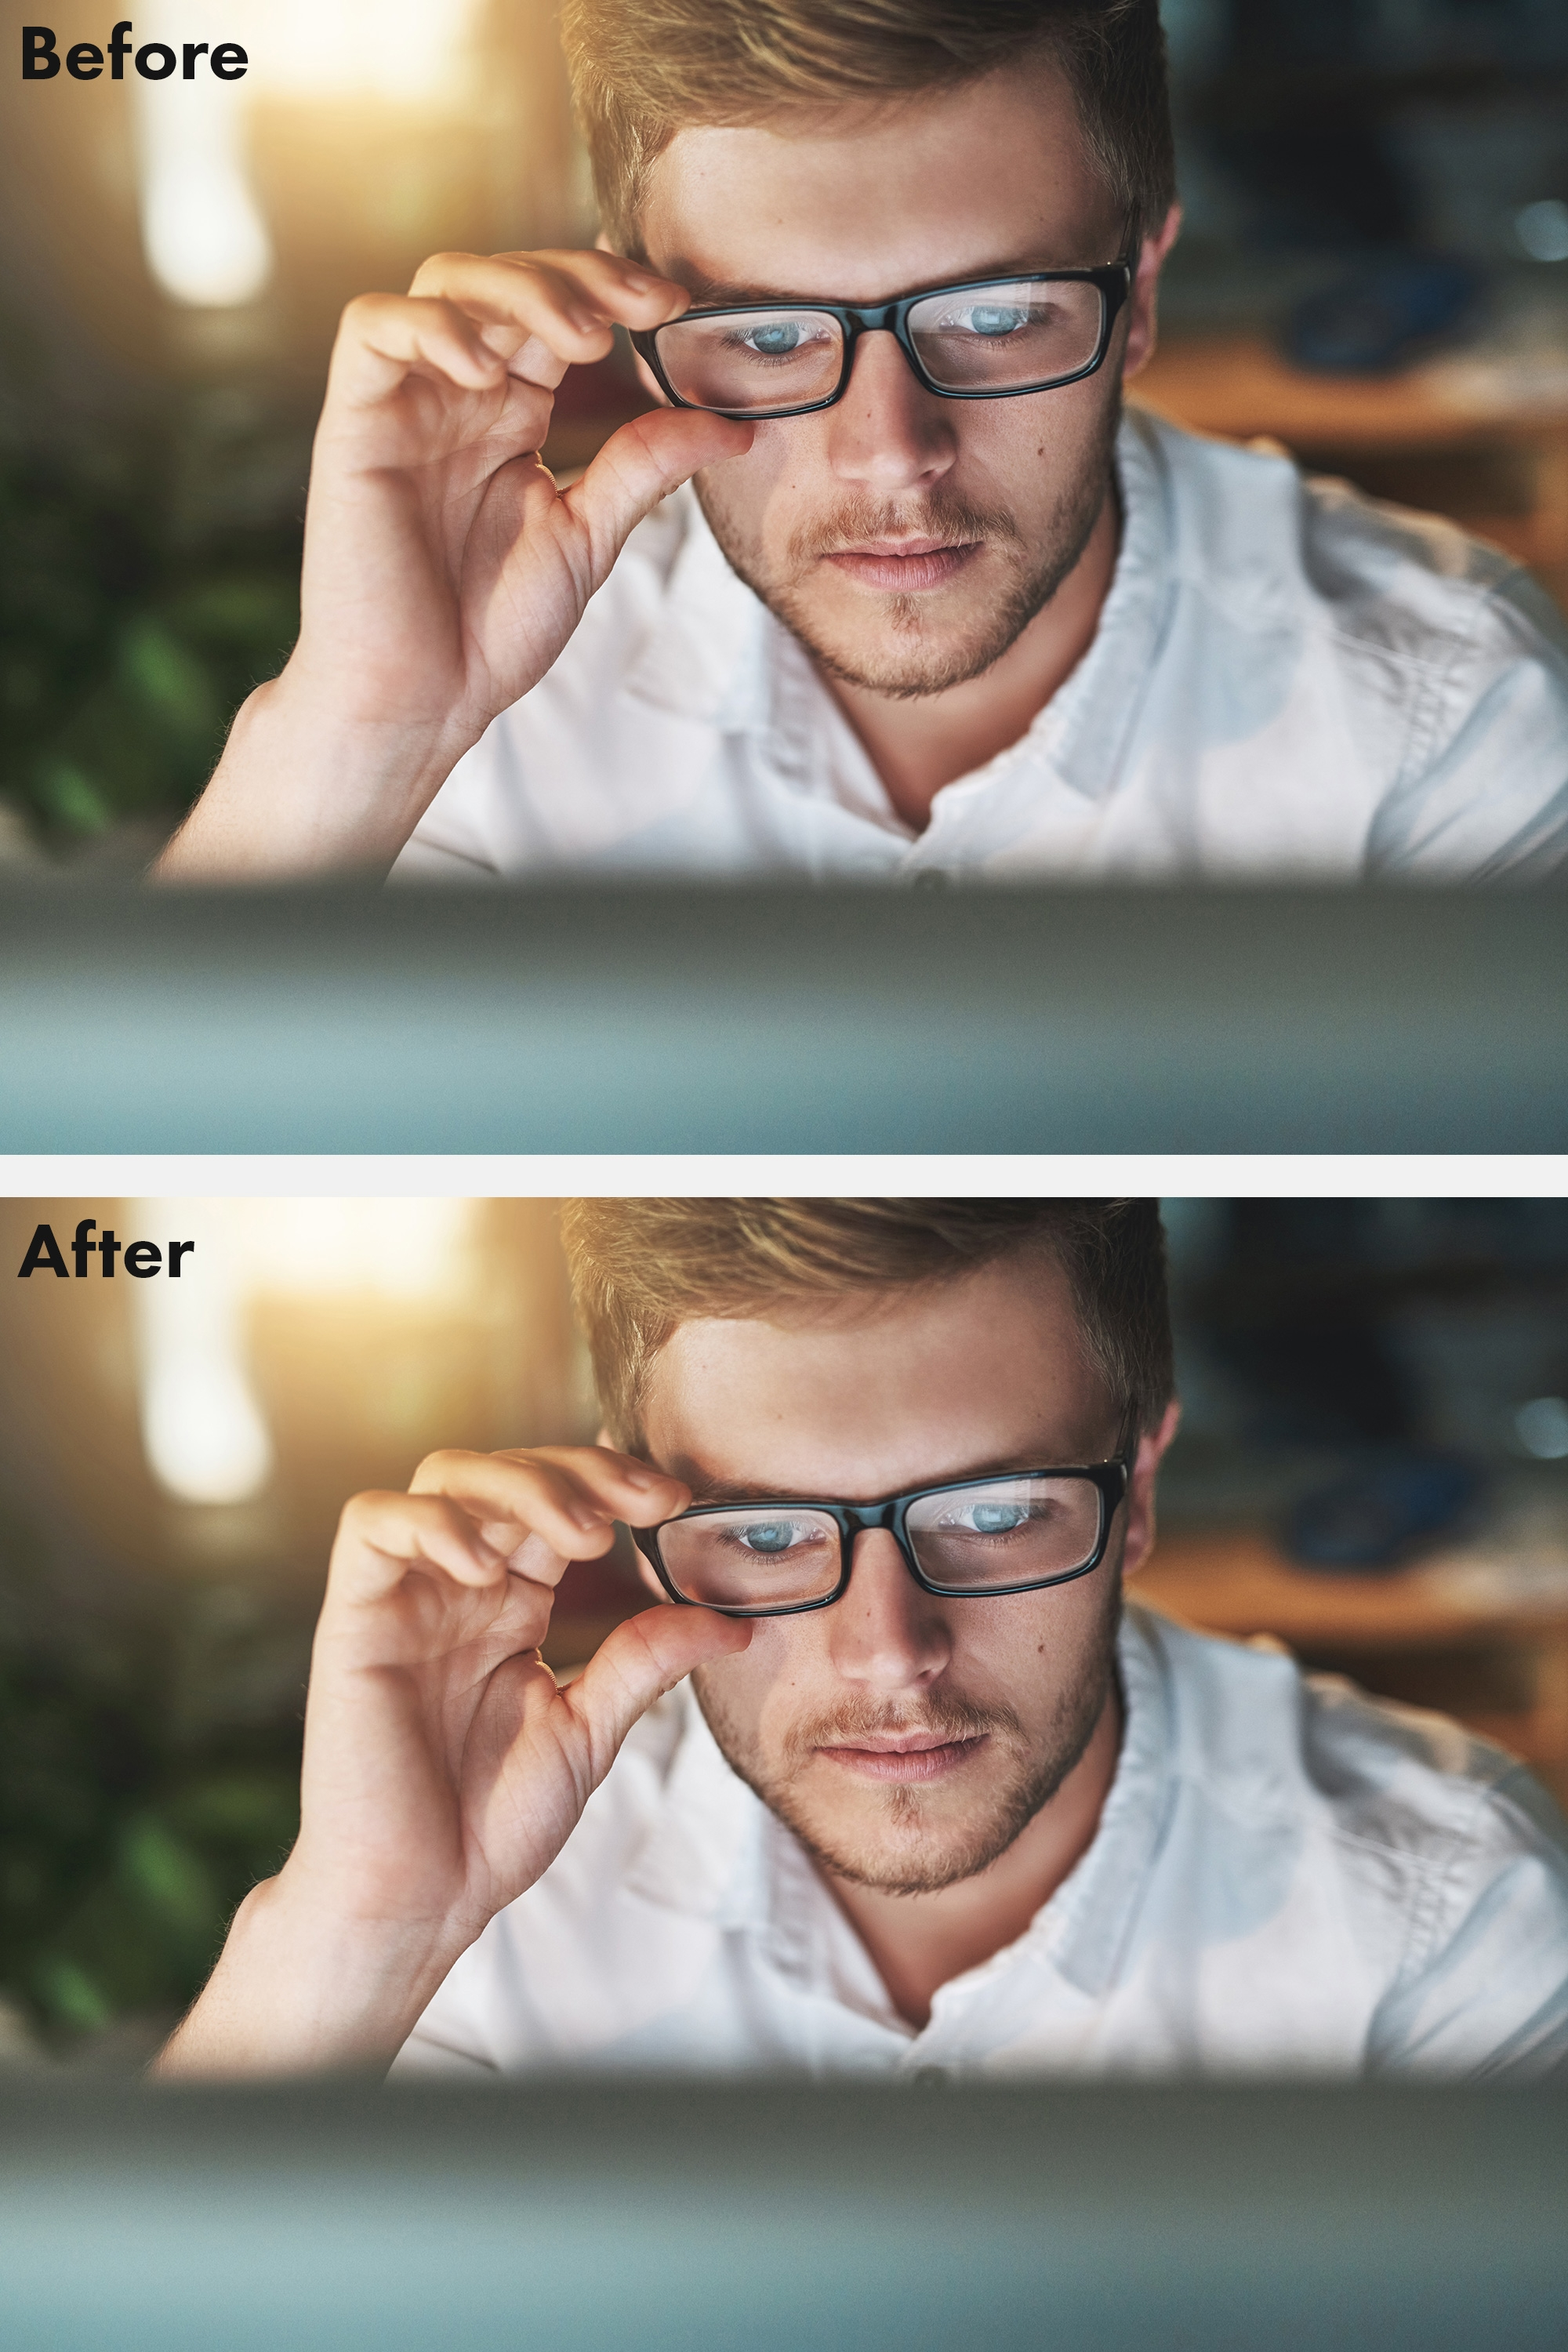 Photoshop tutorial: Use Face Aware Liquify to add smiles and change